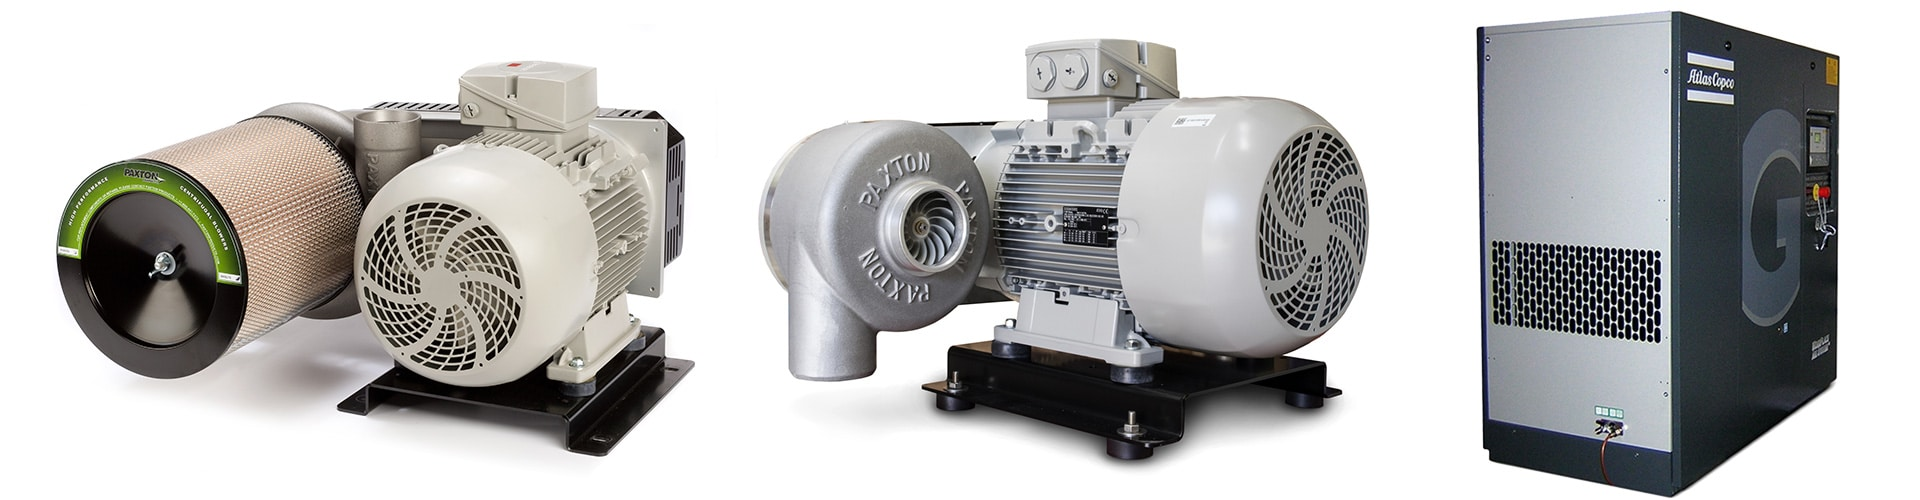 compressed_air-vs-air_blowers-wide